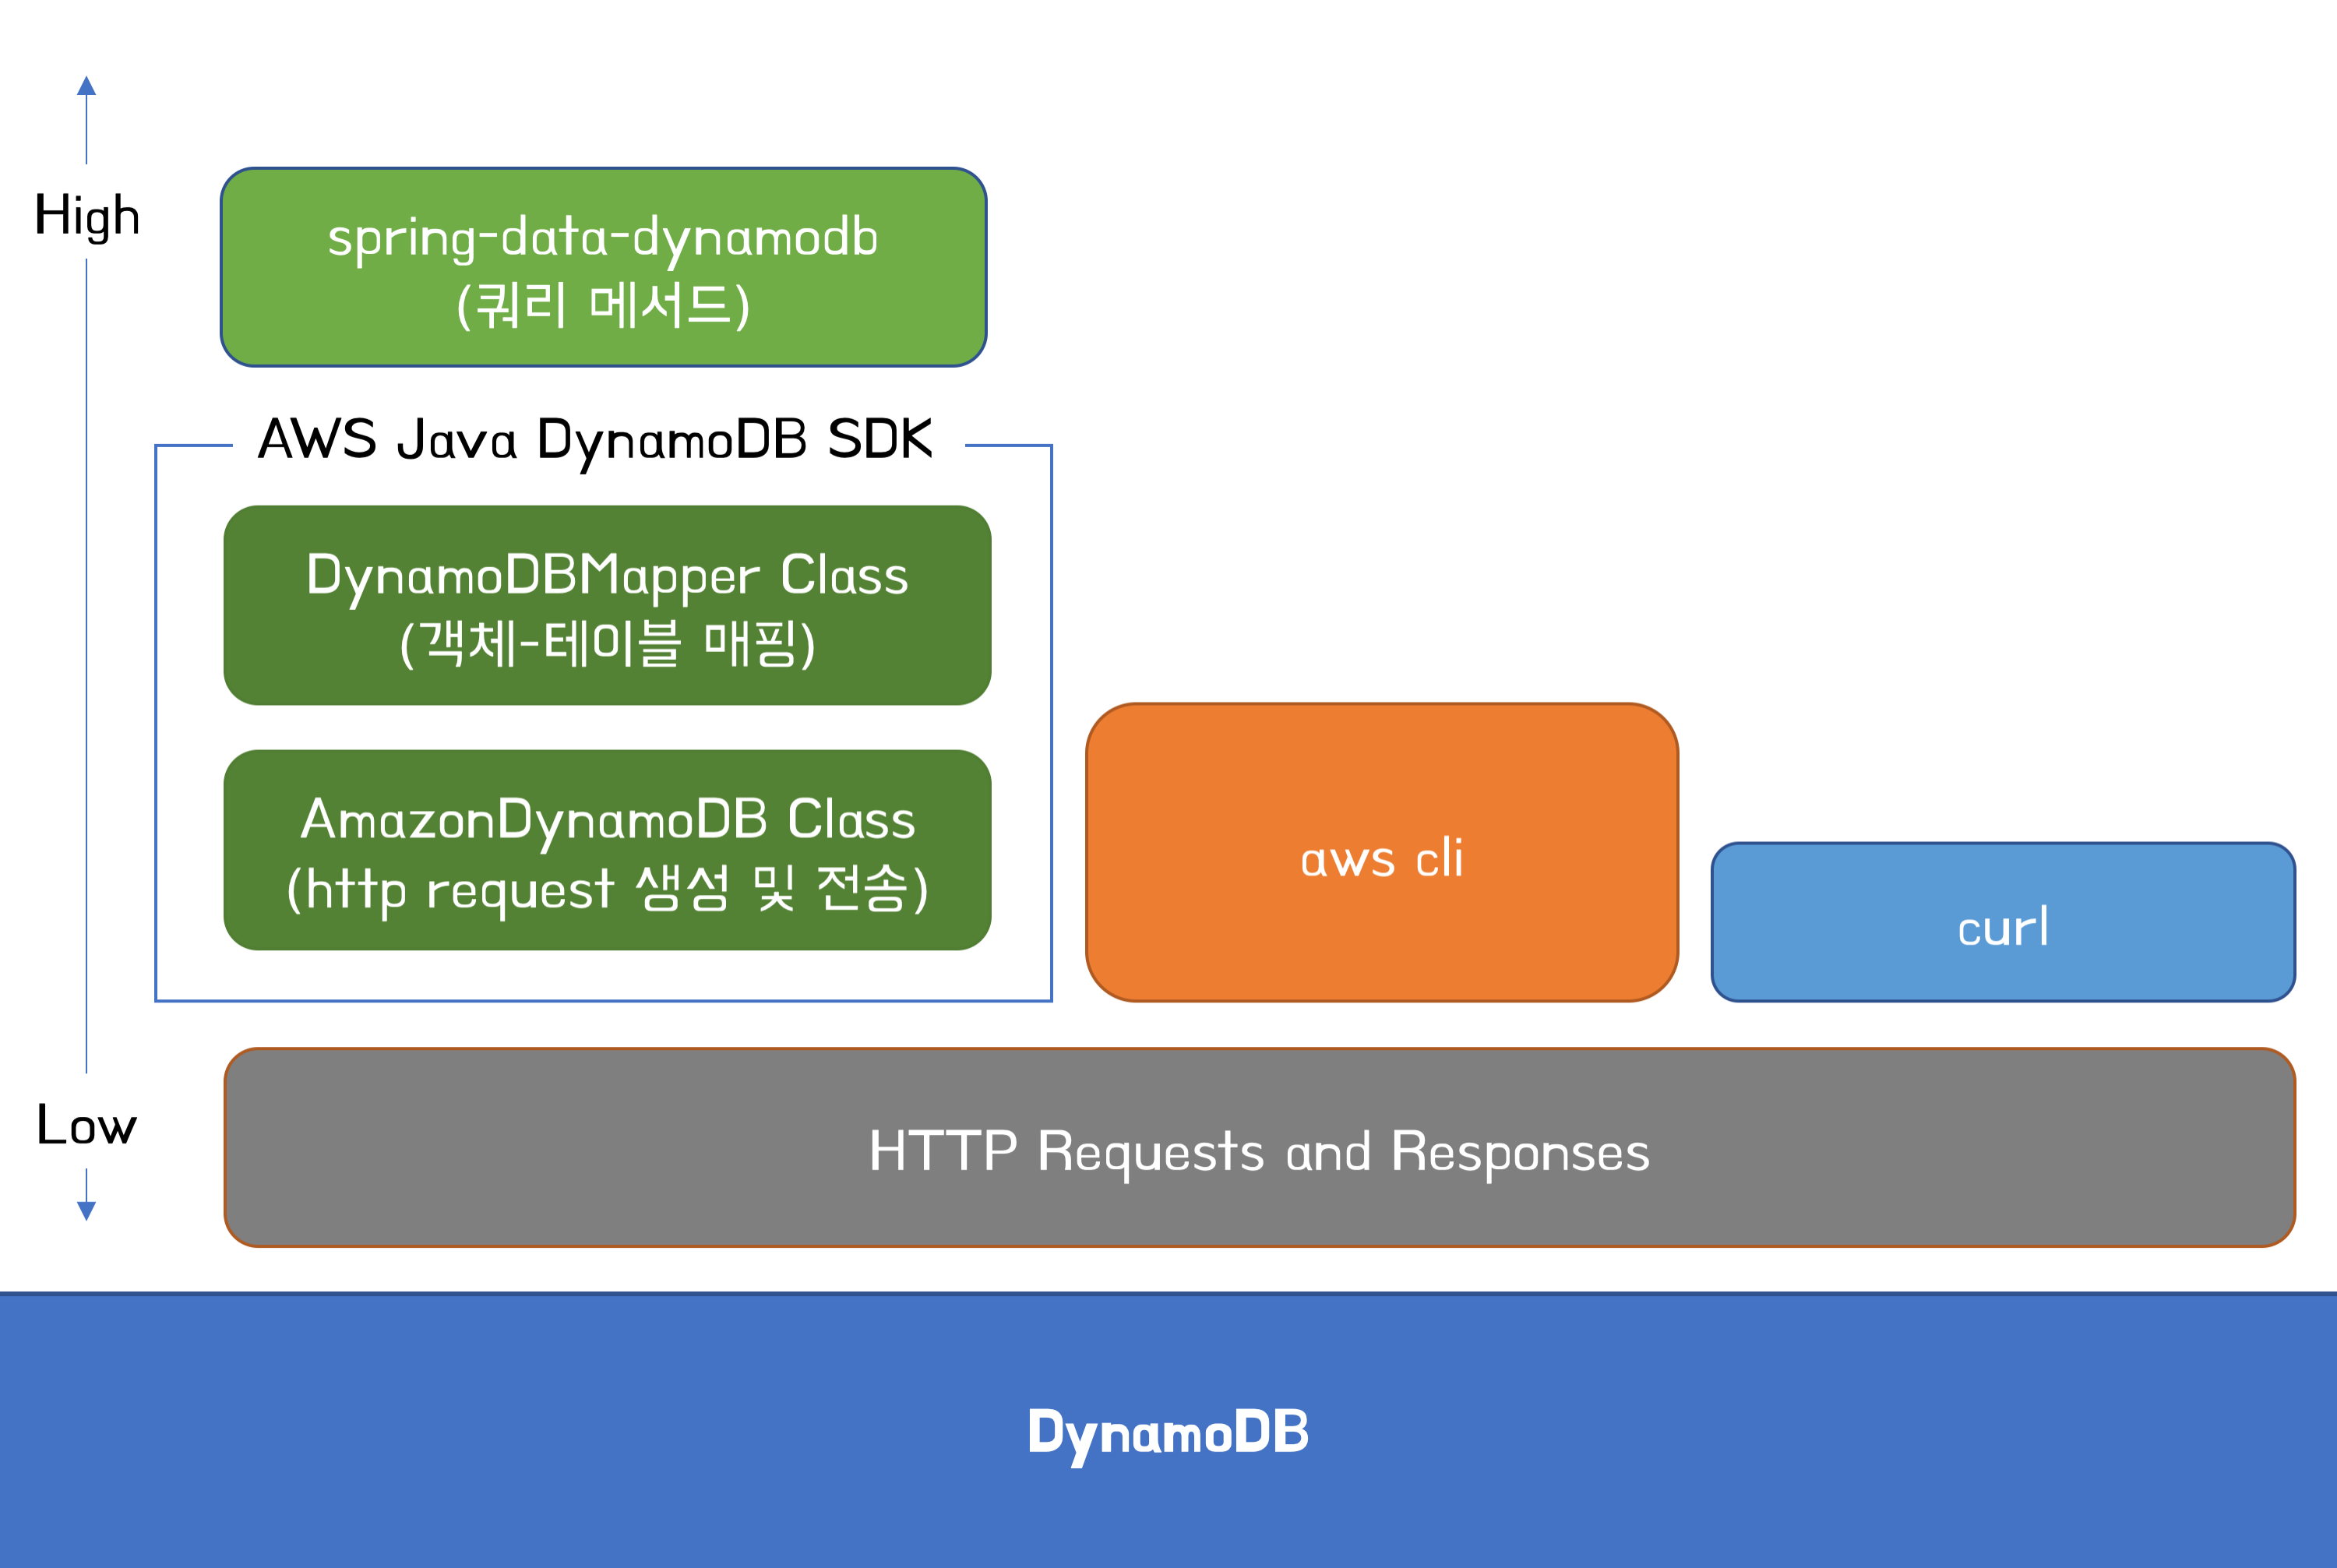 DynamoDB Accessing Layer